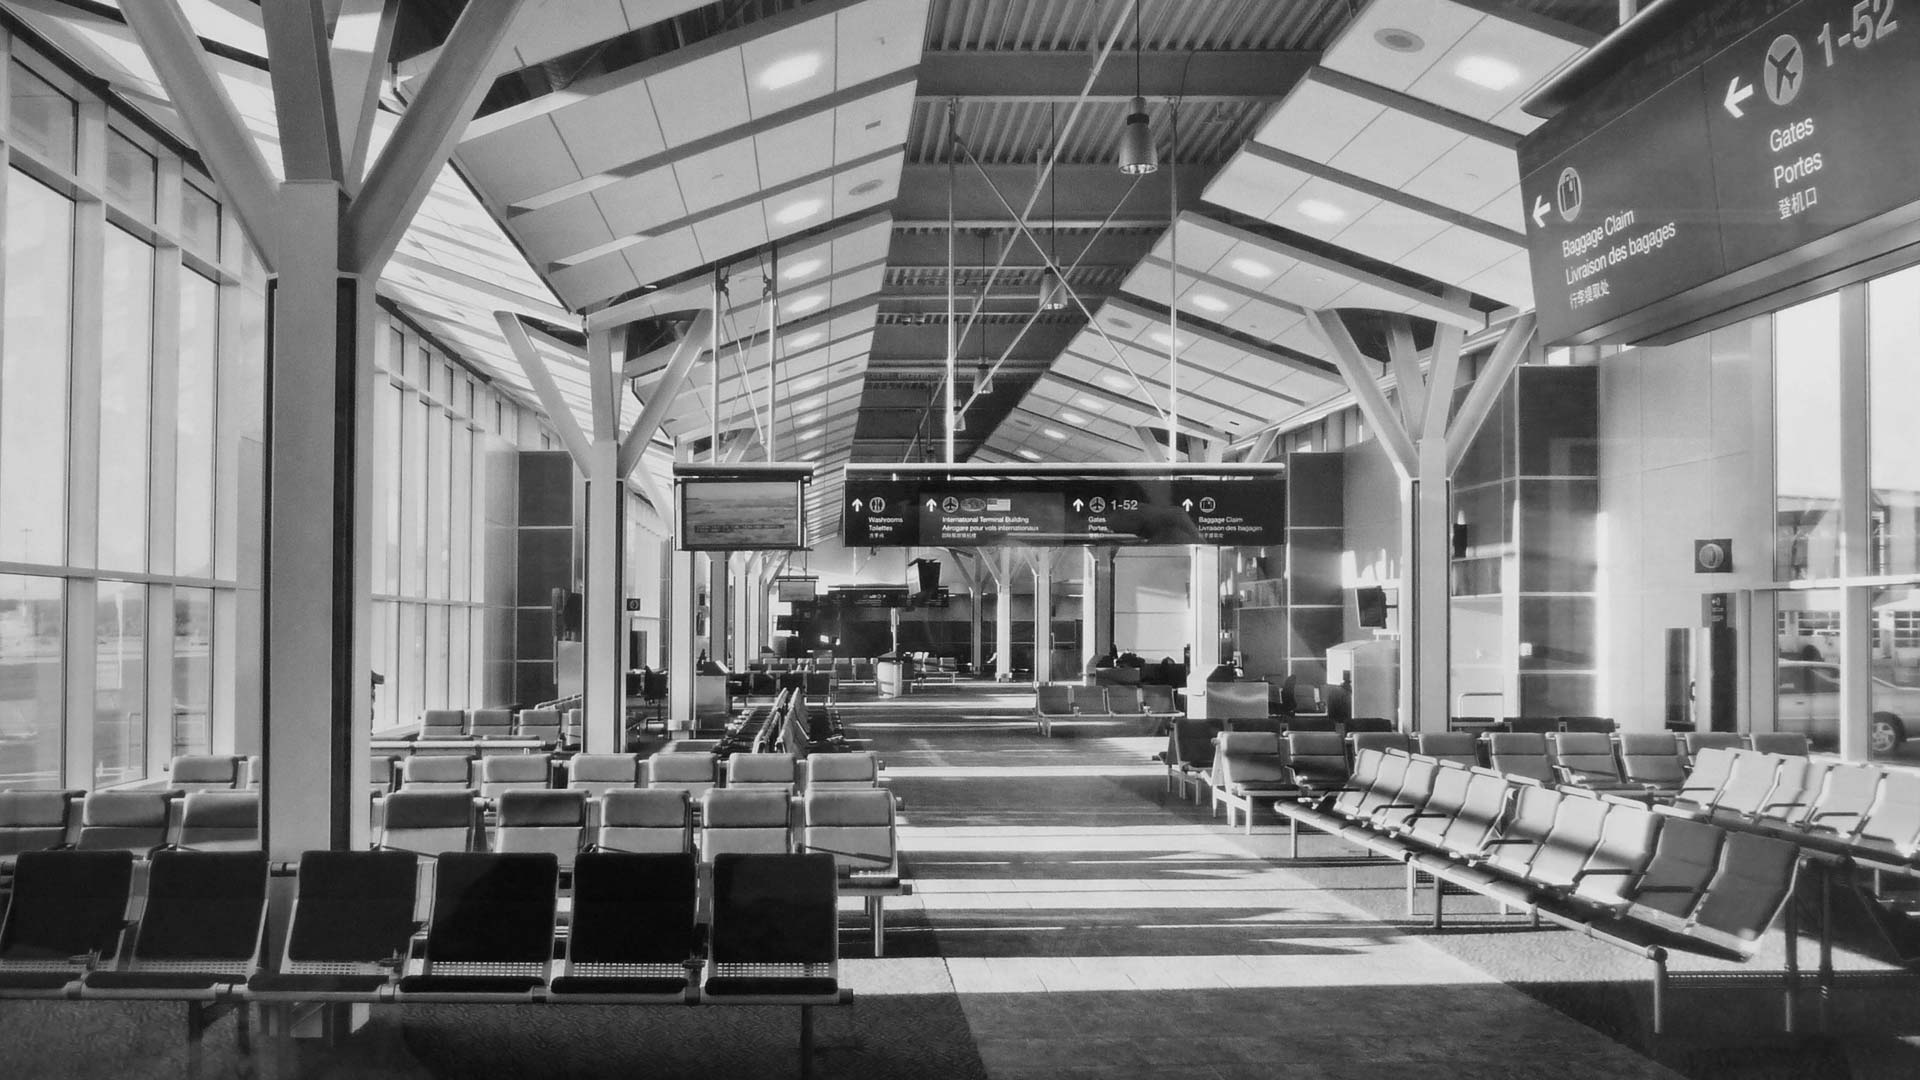 black and white vancouver international airport waiting area interior design